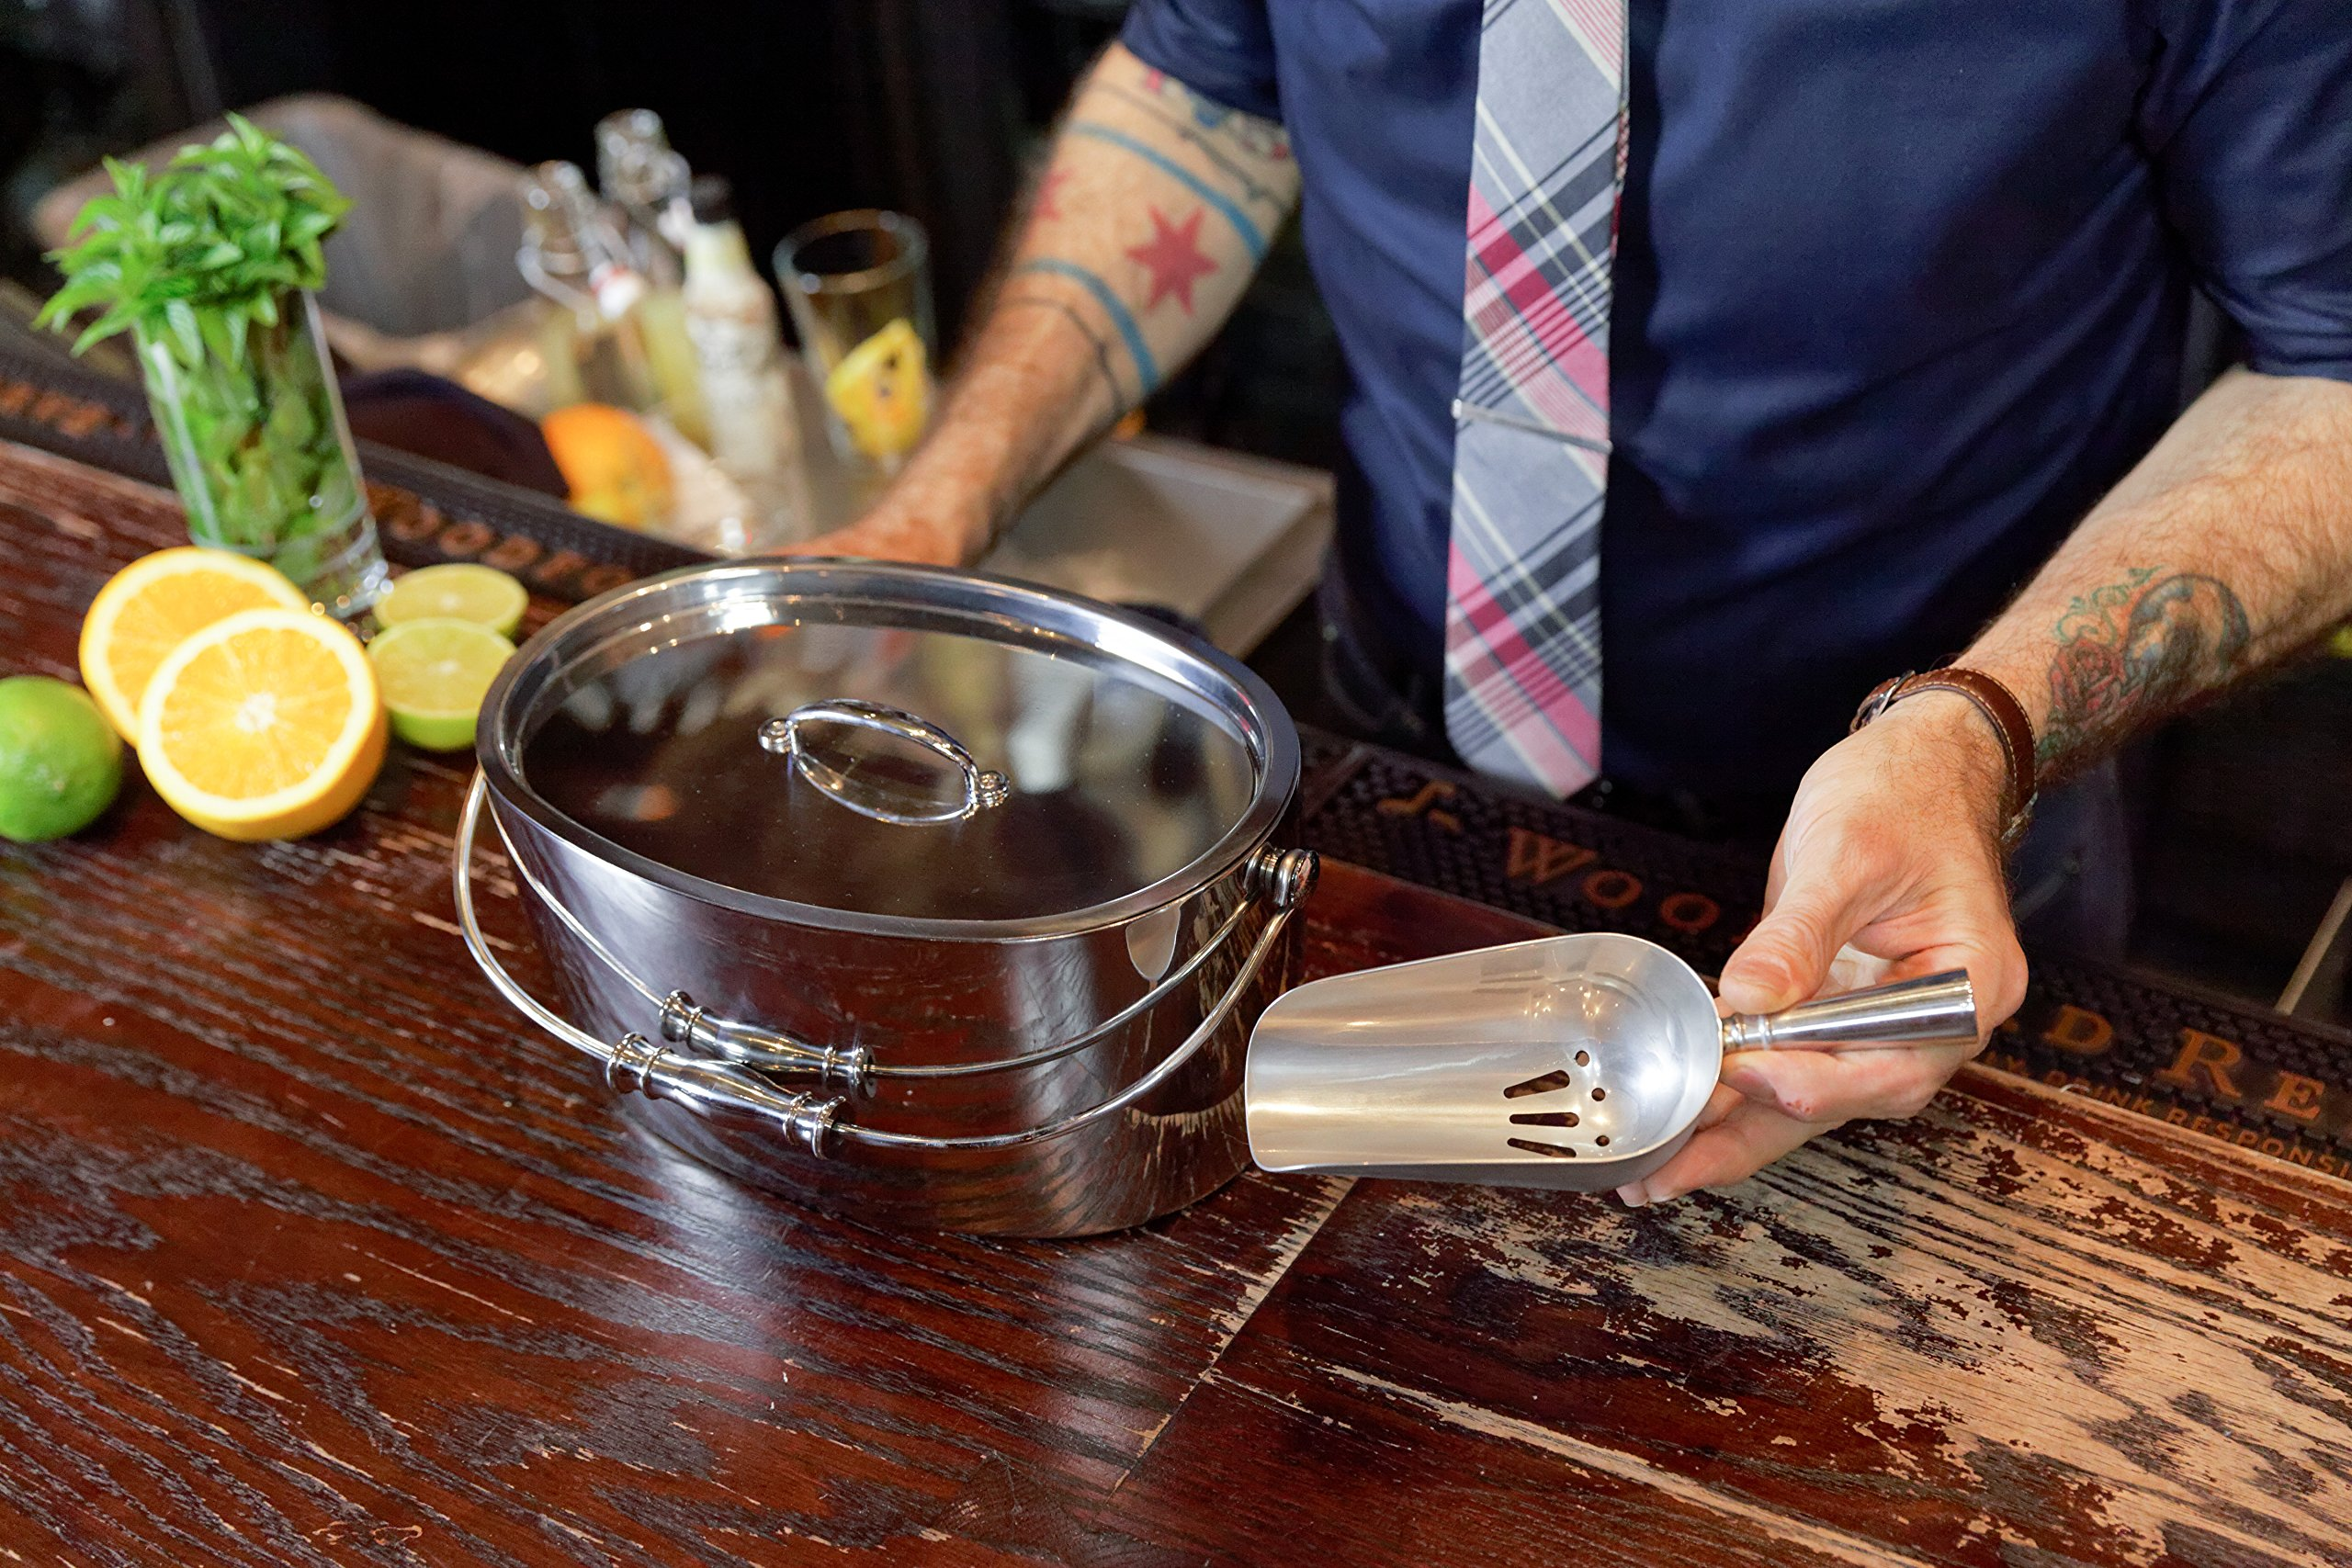 Crafthouse by Fortessa Professional Metal Barware/Bar Tools by Charles Joly, 12'' x 5.25'' Stainless Steel Ice Bucket with Handle and Drain Tray by Crafthouse by Fortessa (Image #7)